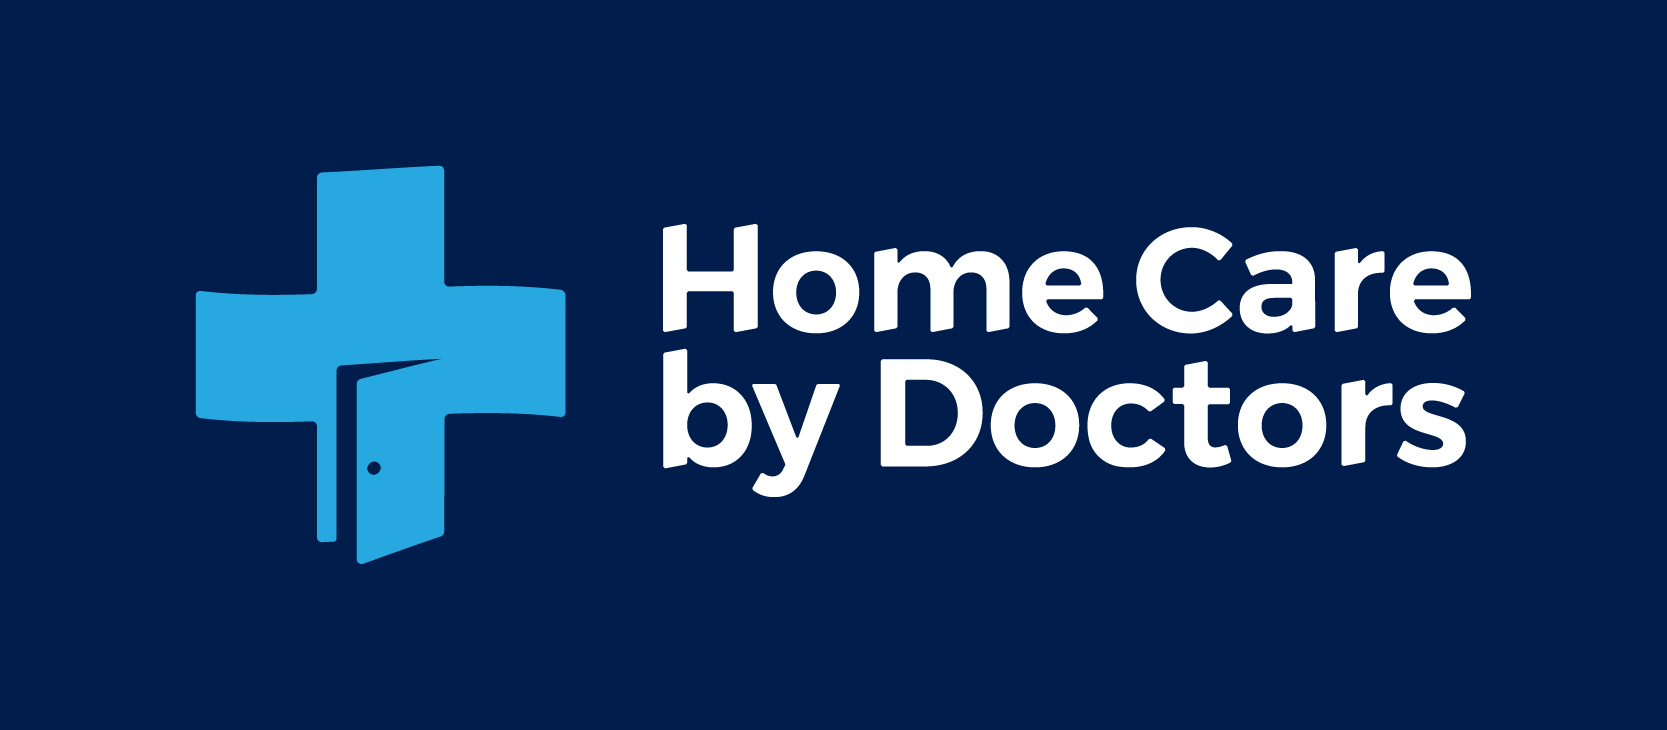 Home Care By Doctors